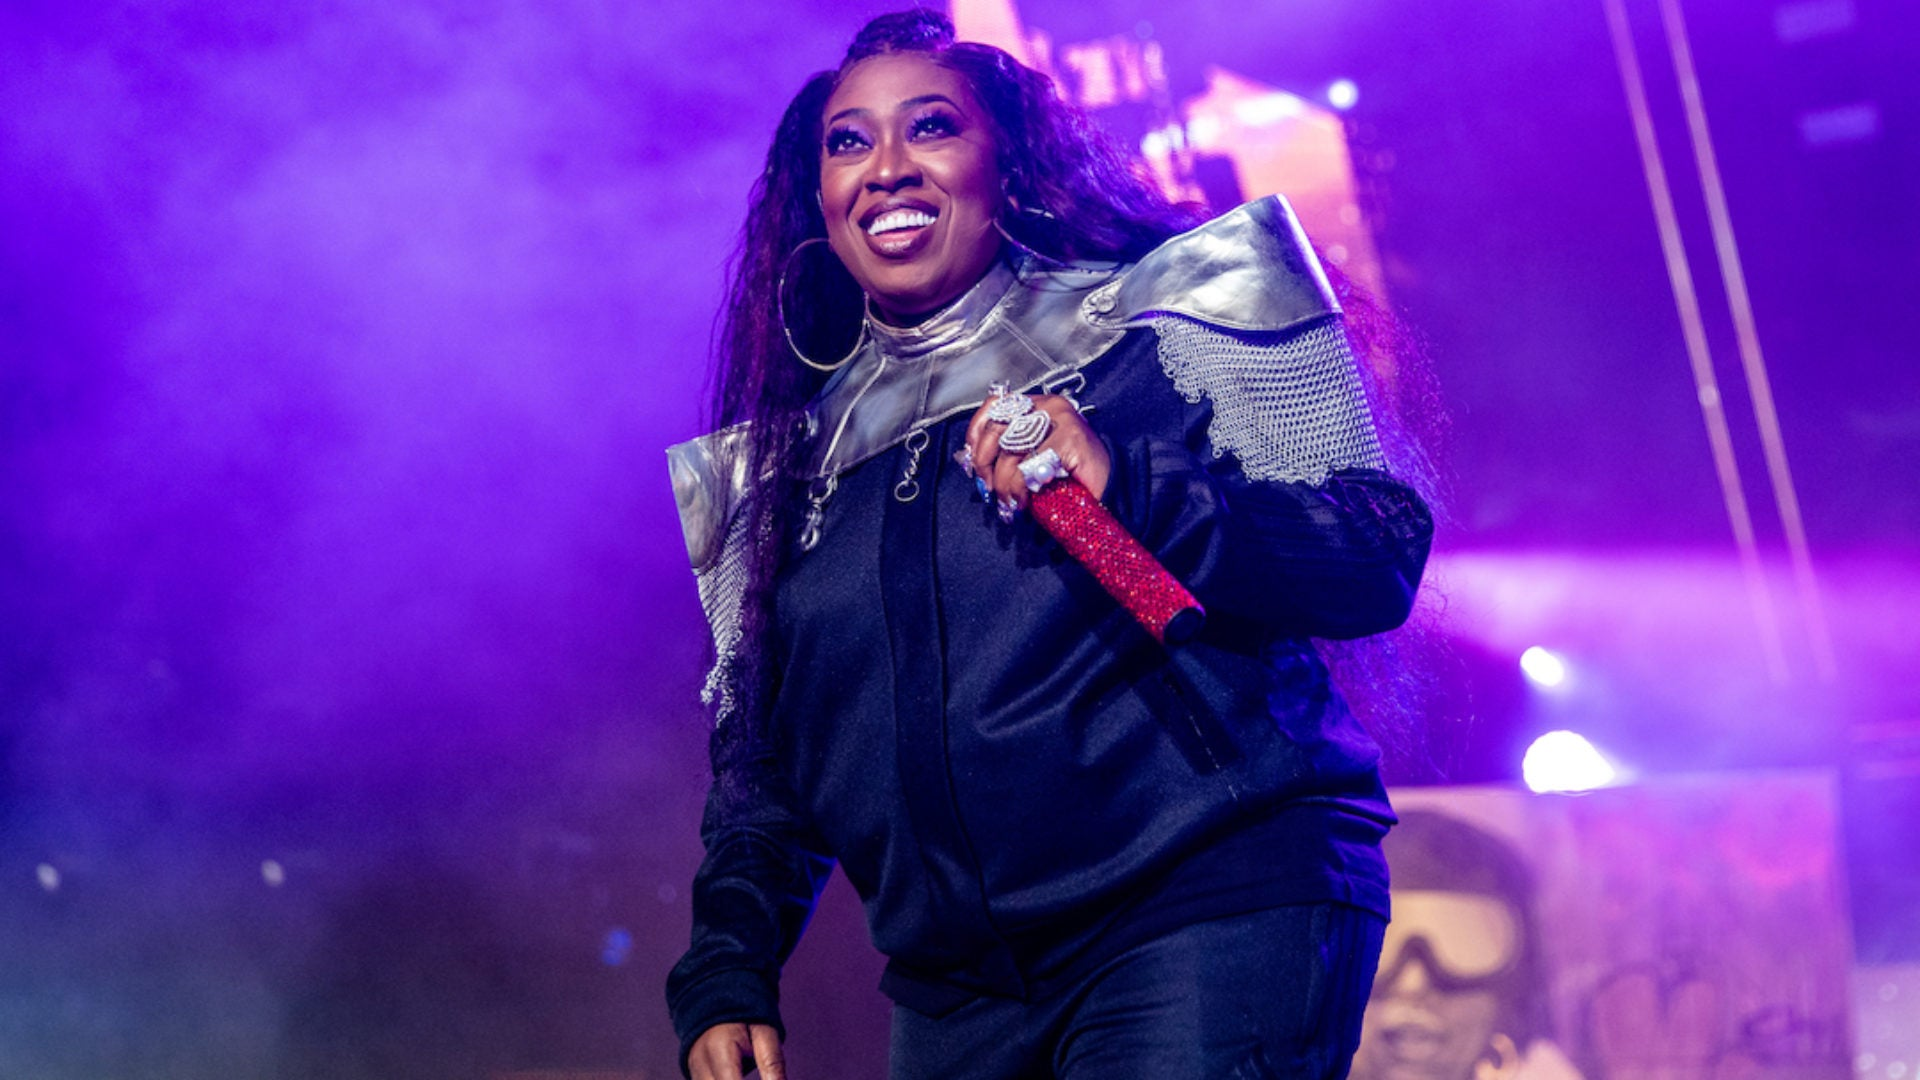 Missy Elliott Shares New 'Iconology' EP, Releases Video For 'Throw It Back'